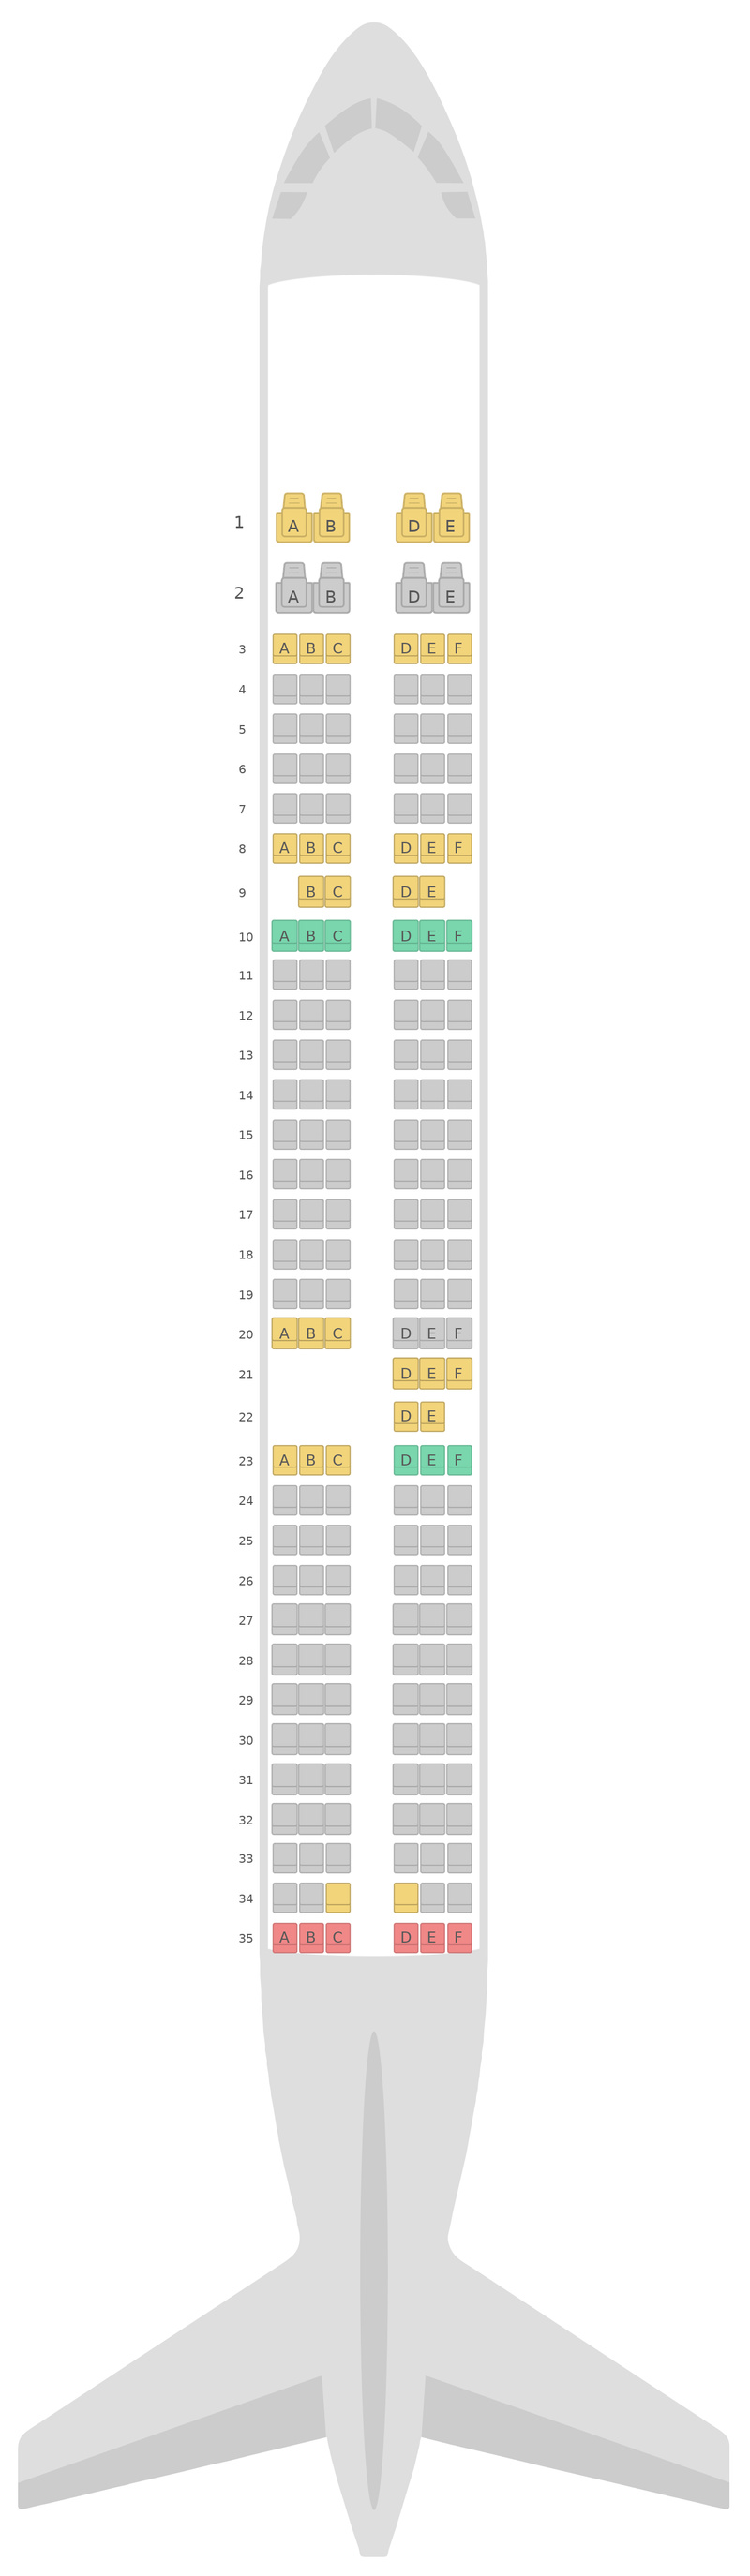 Sitzplan Airbus A321 v2 S7 Airlines